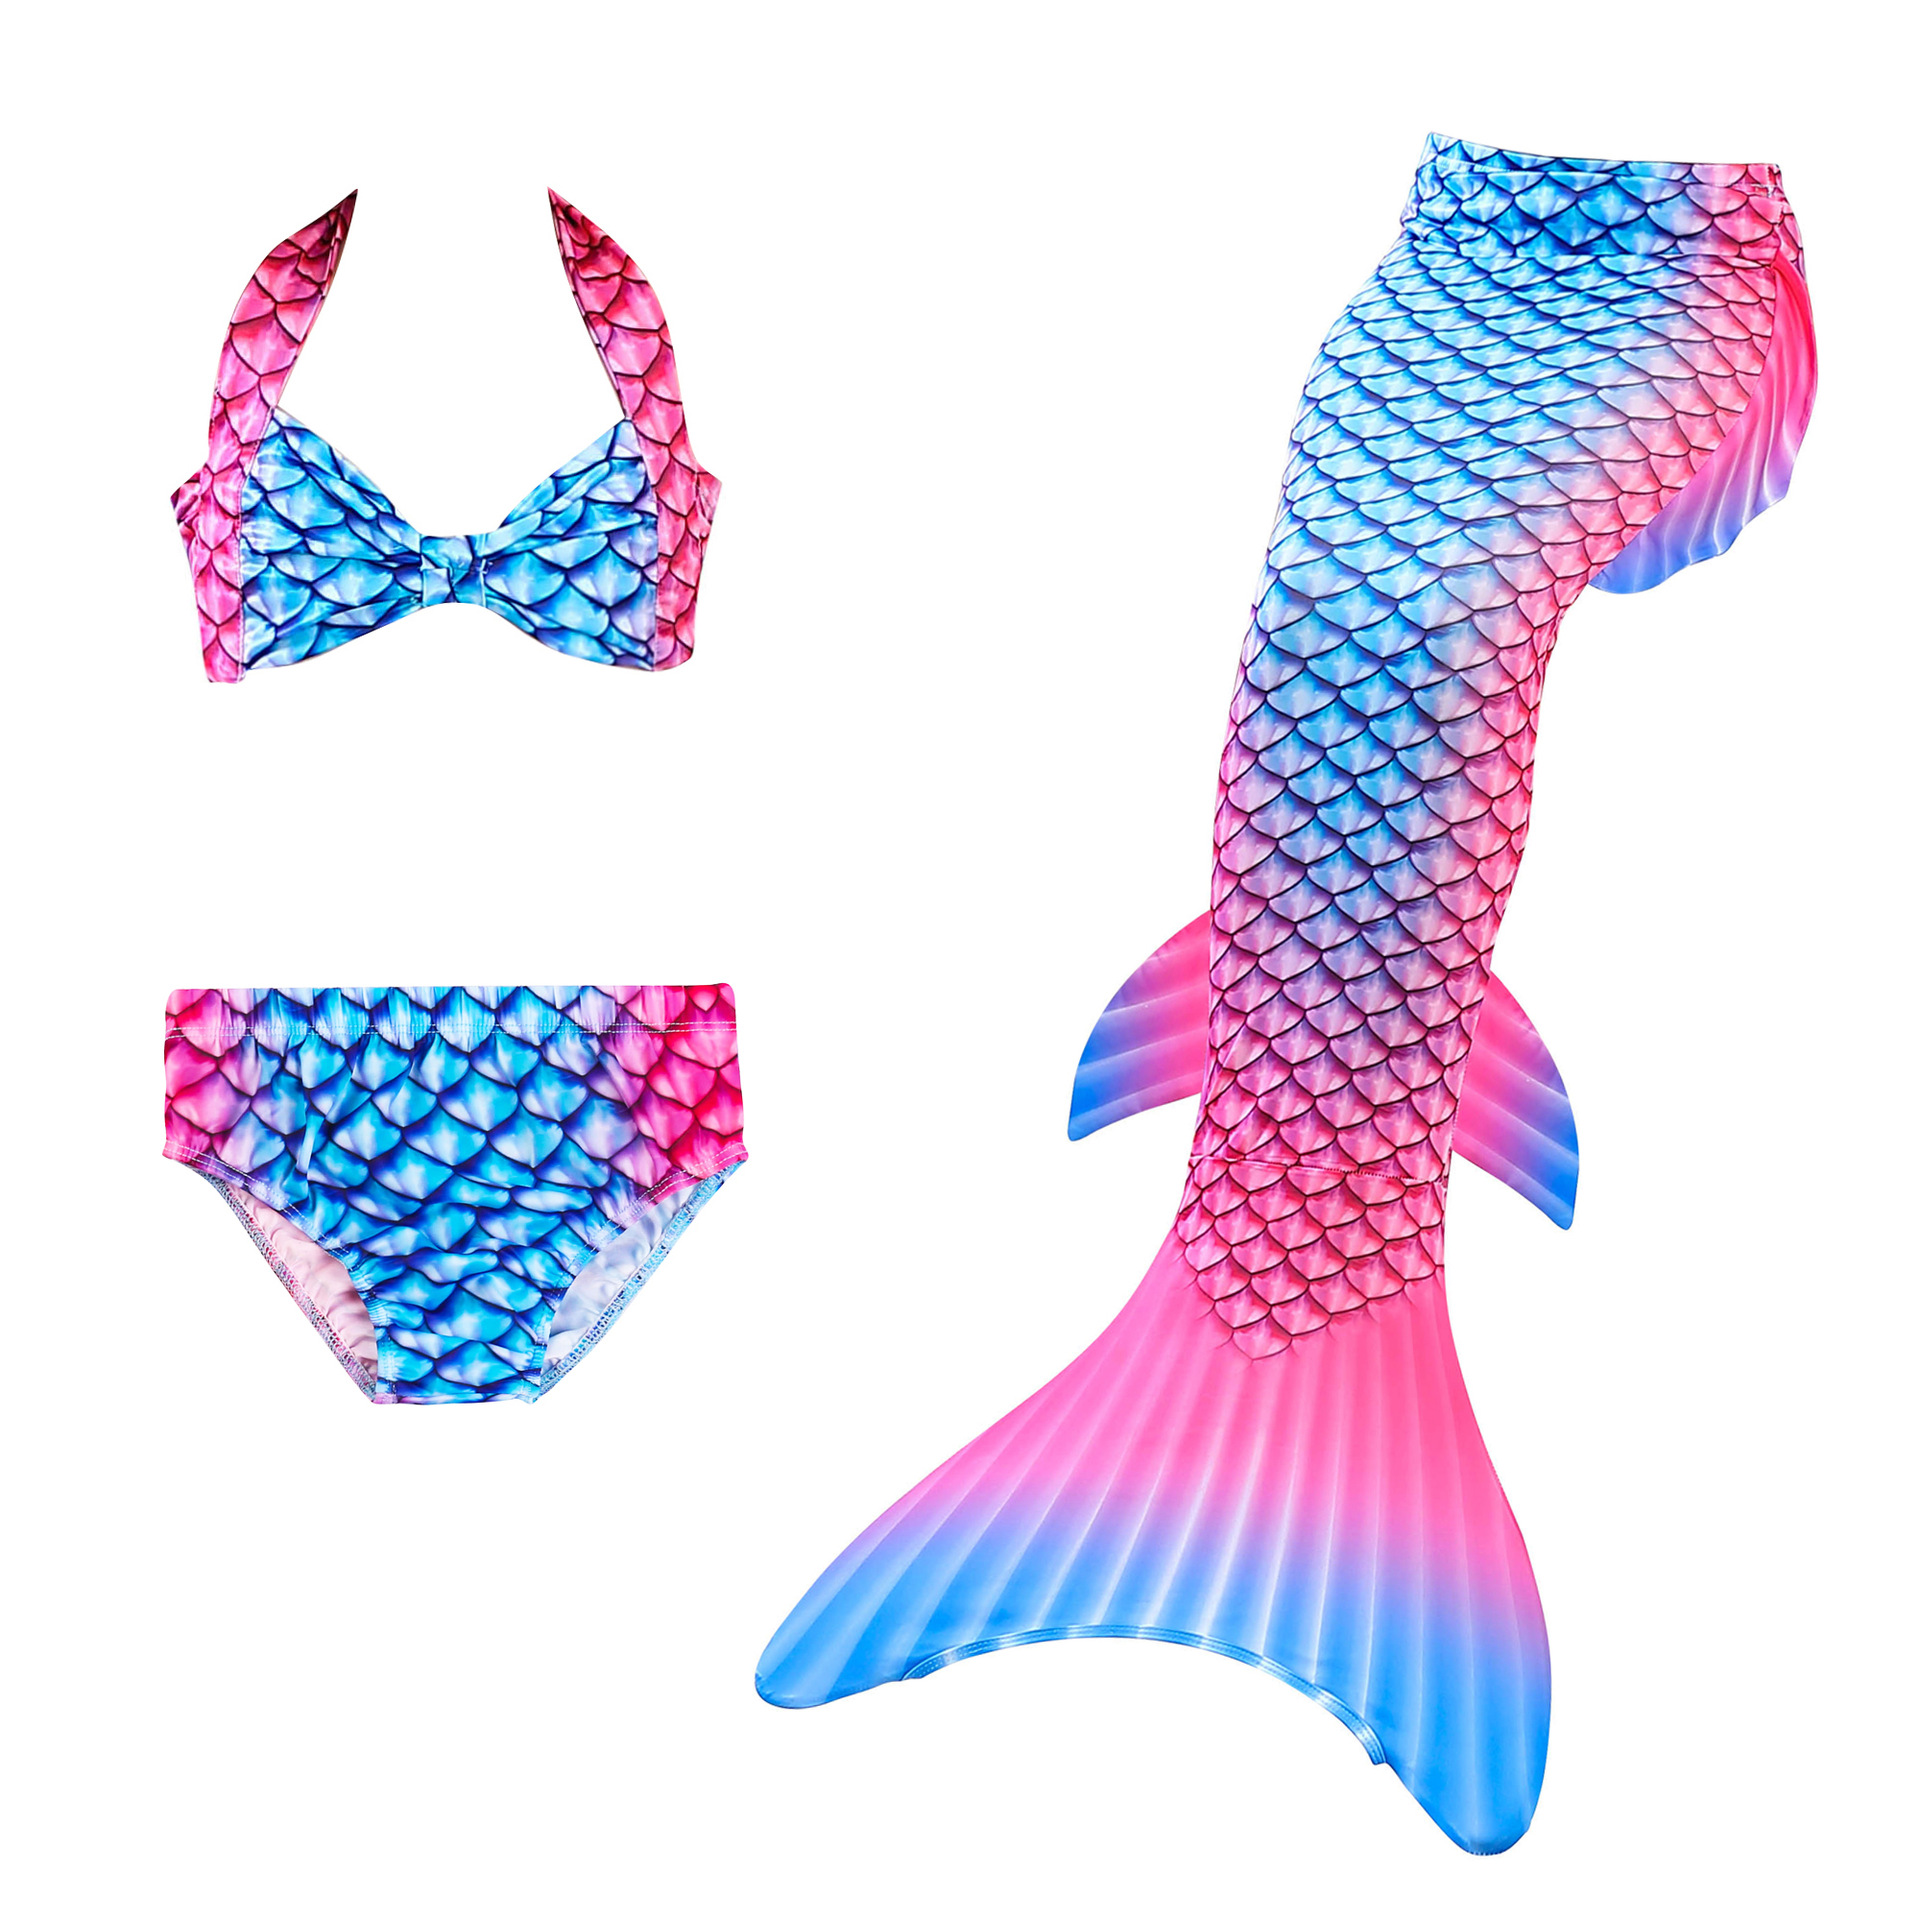 2019 New 3piece Bikinis Set Swimmable Children Mermaid Tails Girls Kids Girl Swimming Mermaid Tail Cosplay Costumes